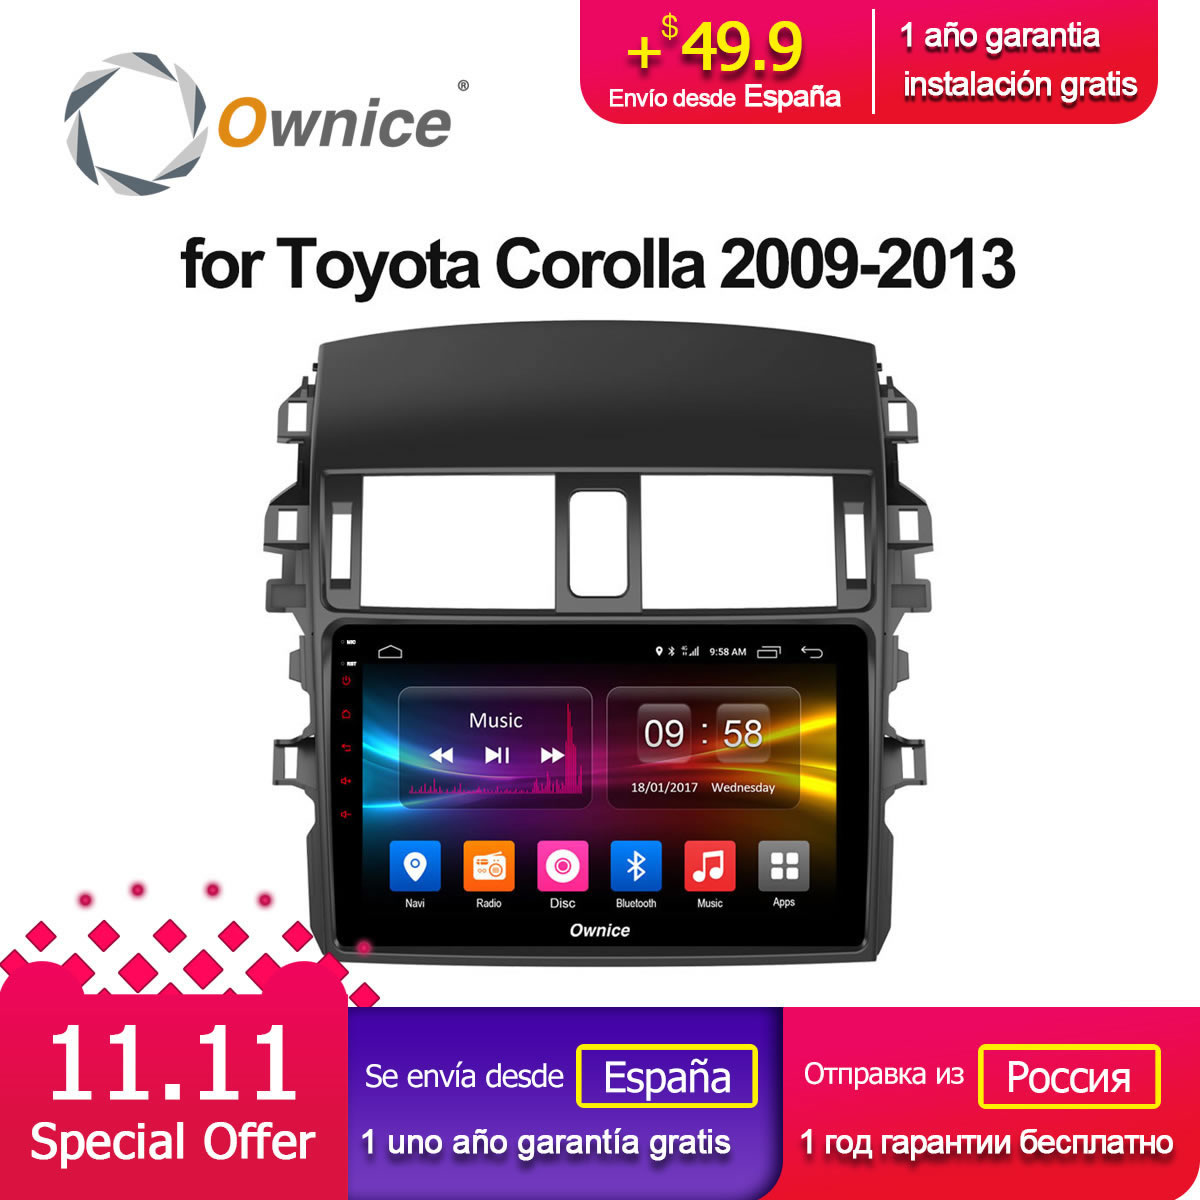 Ownice C500+ G10 Android 8.1 car DVD player Octa Core for Toyota corolla 2009 2010 2011 2012 2013 2GB RAM 32G ROM Support 4G LTE ownice c500 octa core android 6 0 car dvd gps for mazda 6 ruiyi ultra 2008 2009 2010 2011 2012 wifi 4g radio 2gb ram bt 32g rom